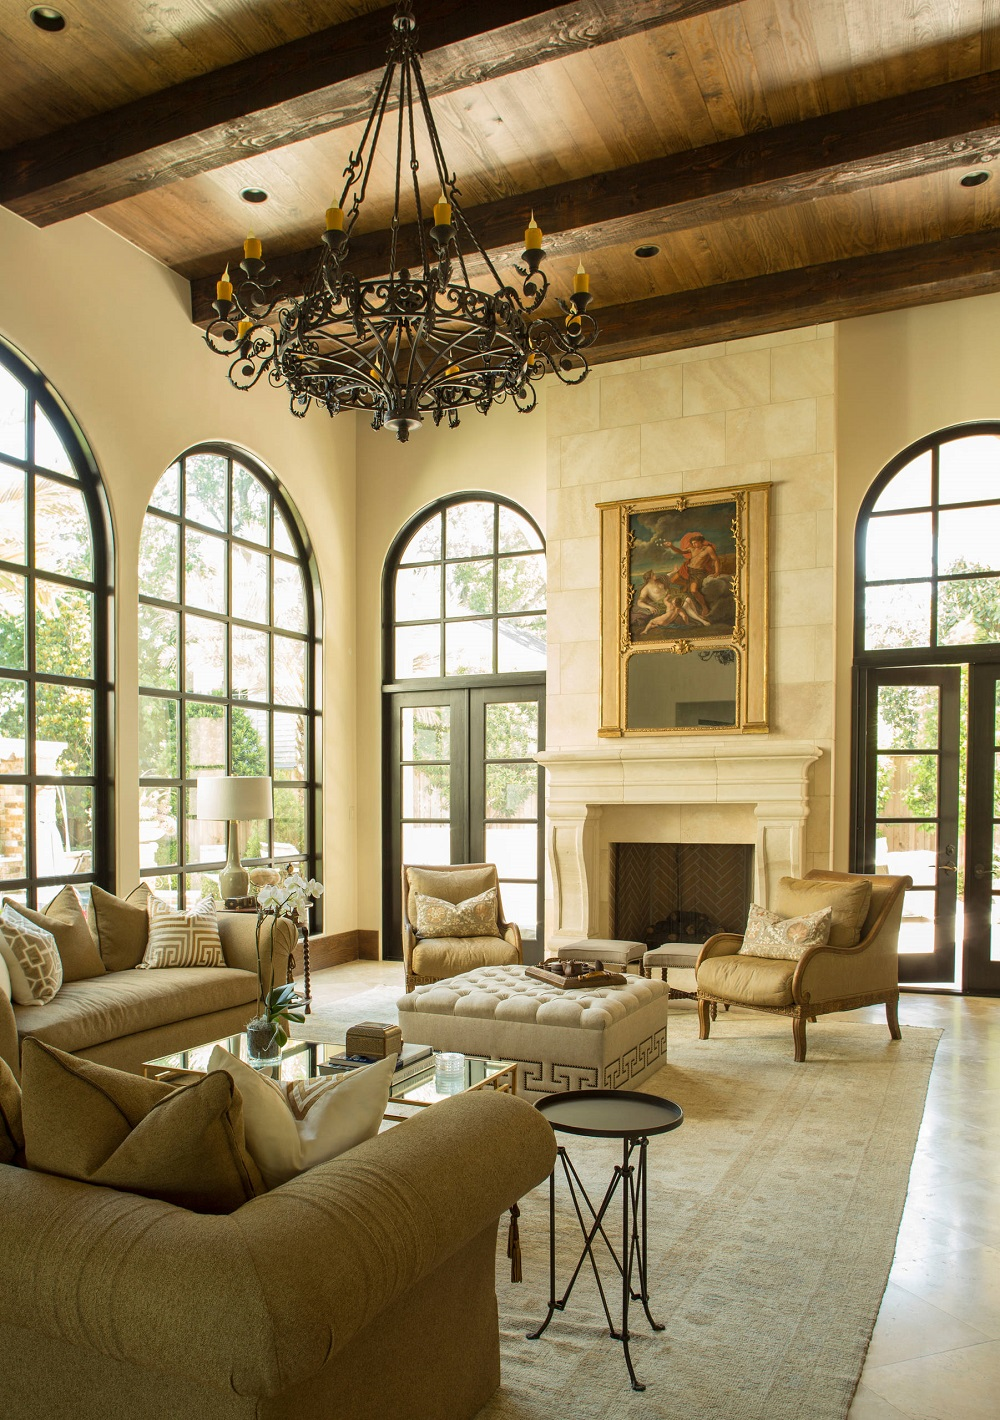 w15-1 The different types of windows you could have for your home